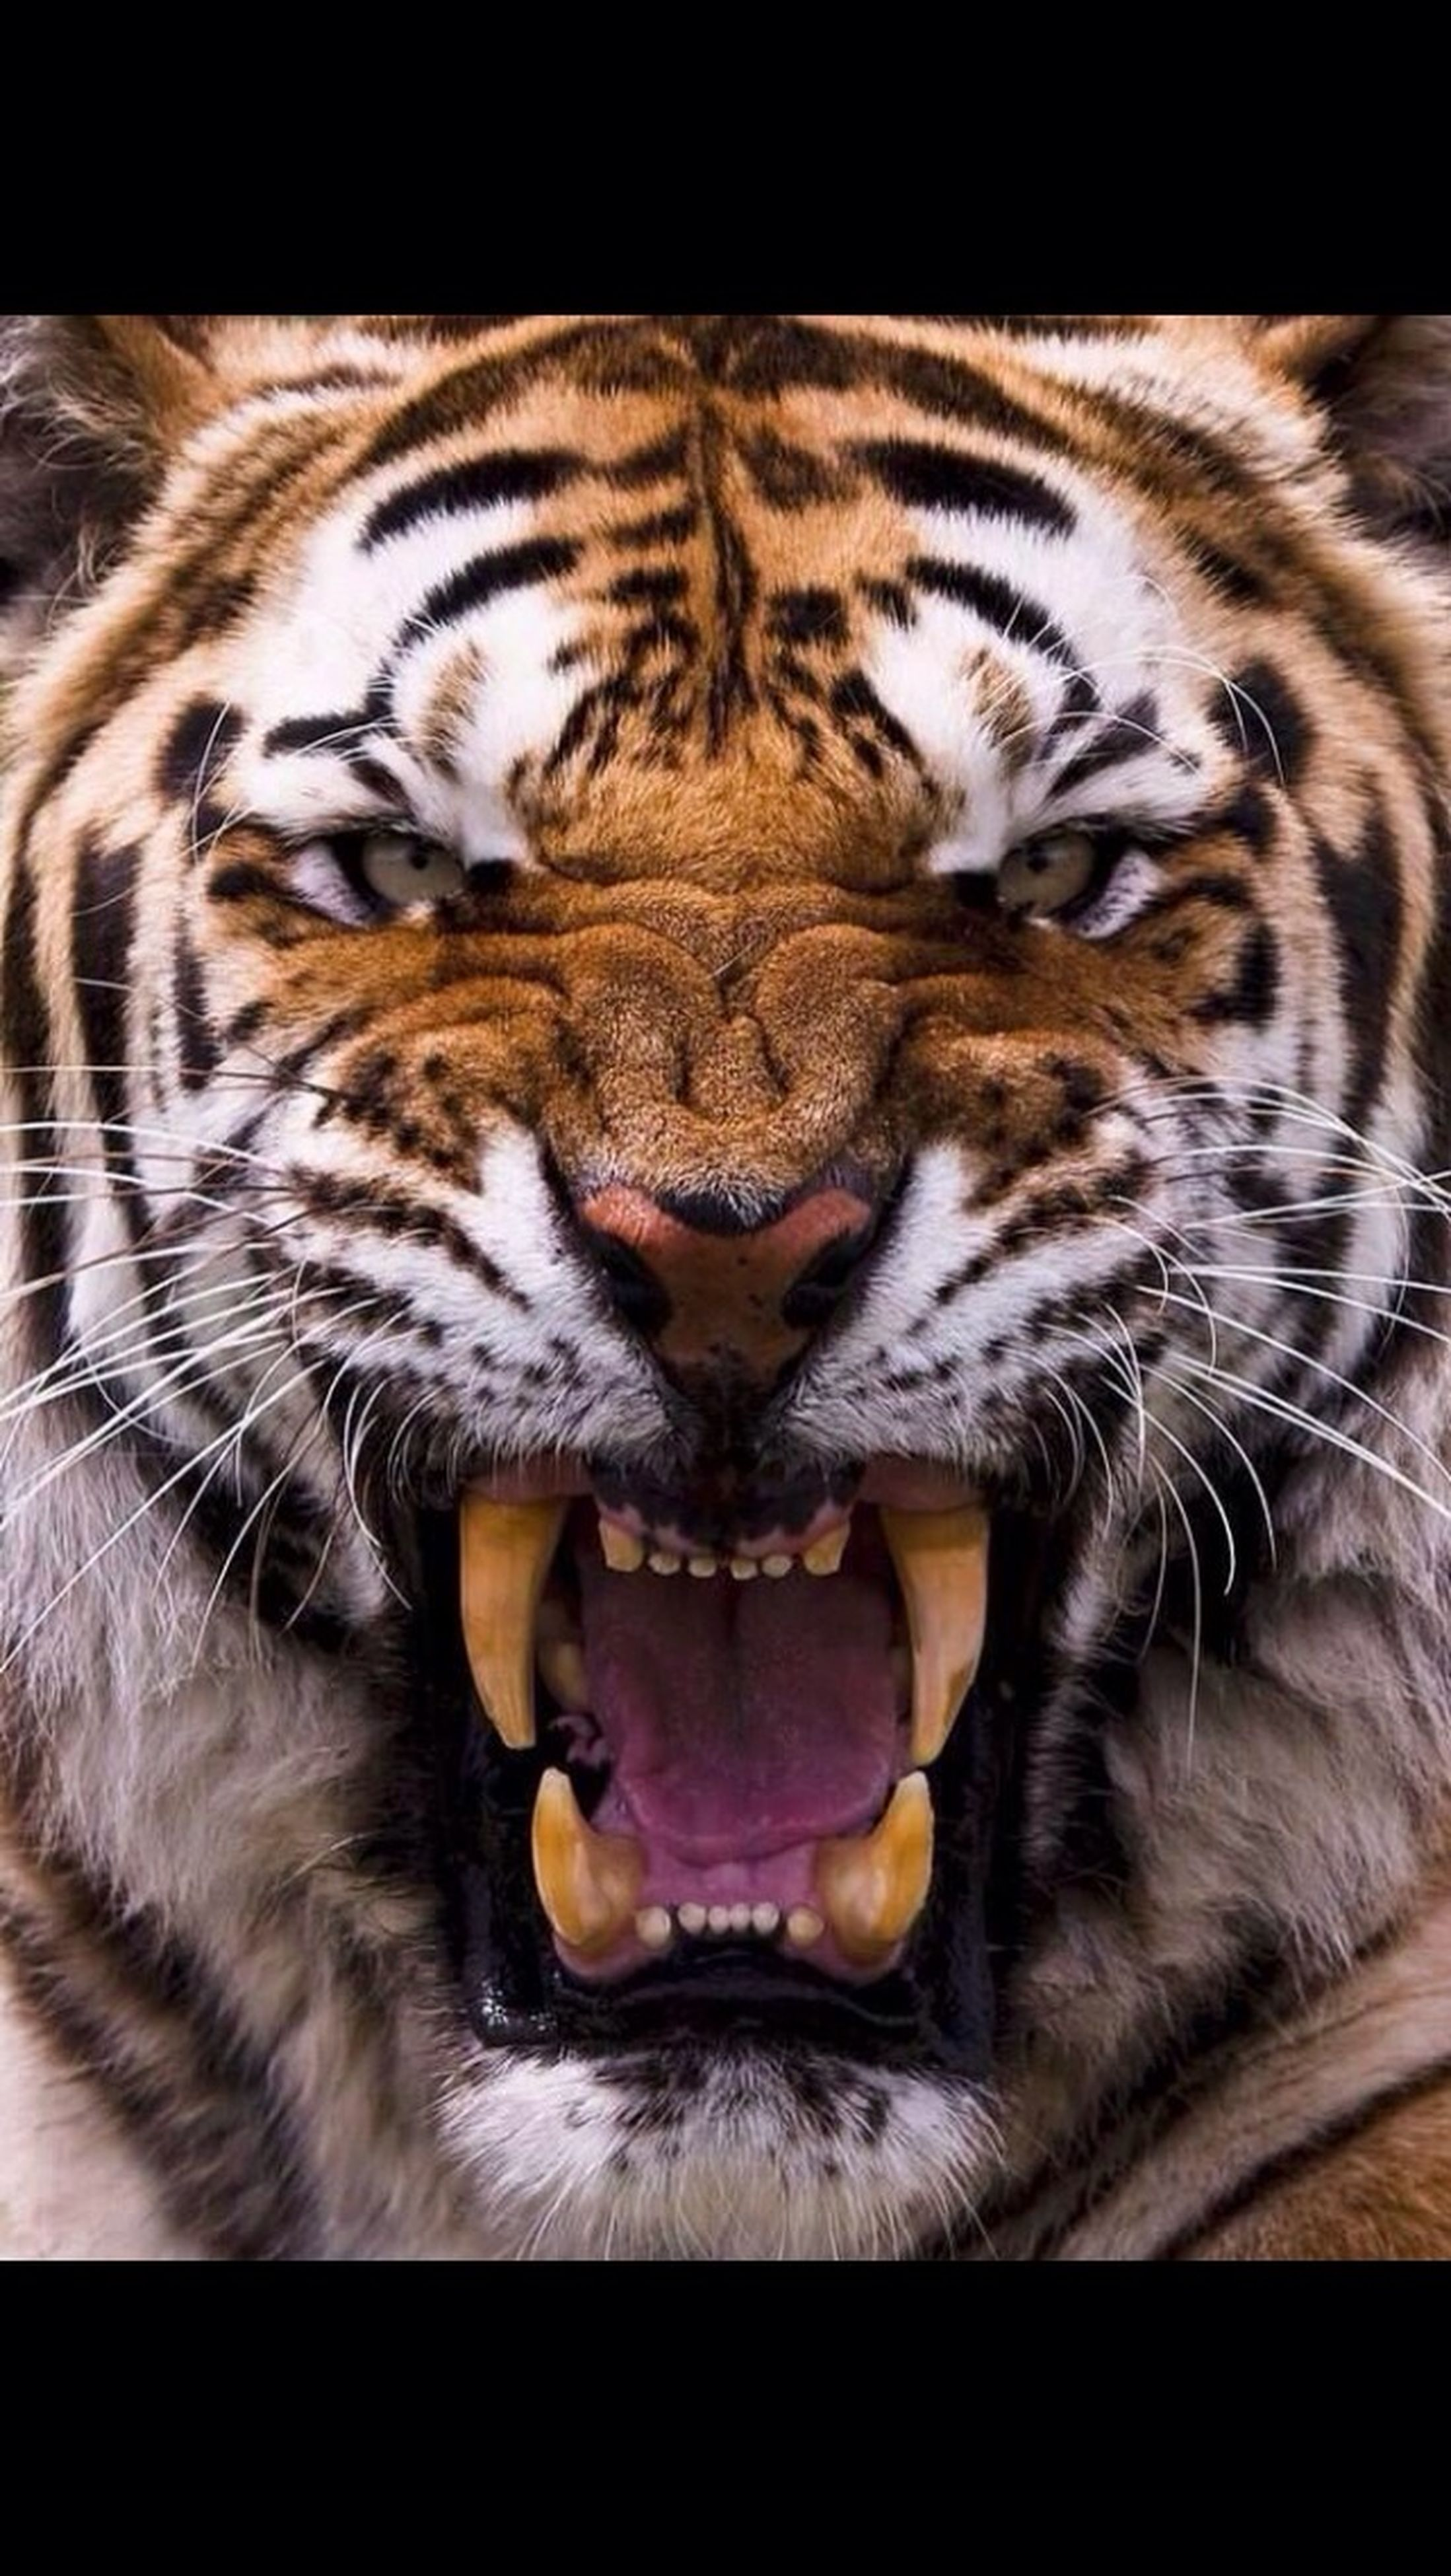 animal themes, one animal, domestic cat, mammal, pets, cat, domestic animals, feline, whisker, indoors, relaxation, lying down, sleeping, close-up, animal head, resting, eyes closed, animal markings, animal body part, tiger